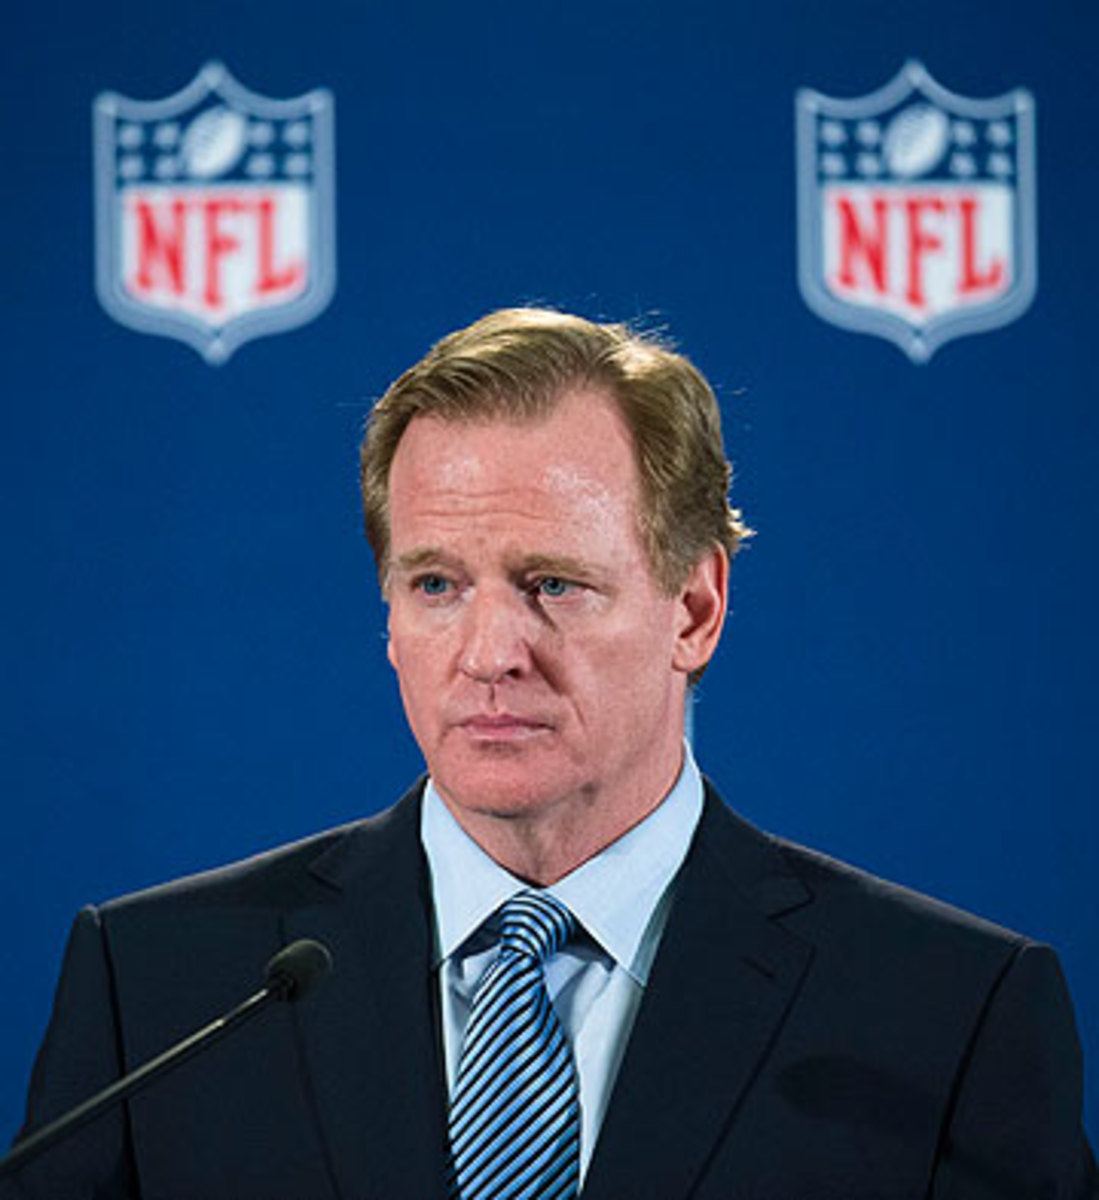 Roger Goodell will have to testify on Nov. 5-6 during the hearing for Ray Rice's appeal of his suspension. (John Minchillo/AP)